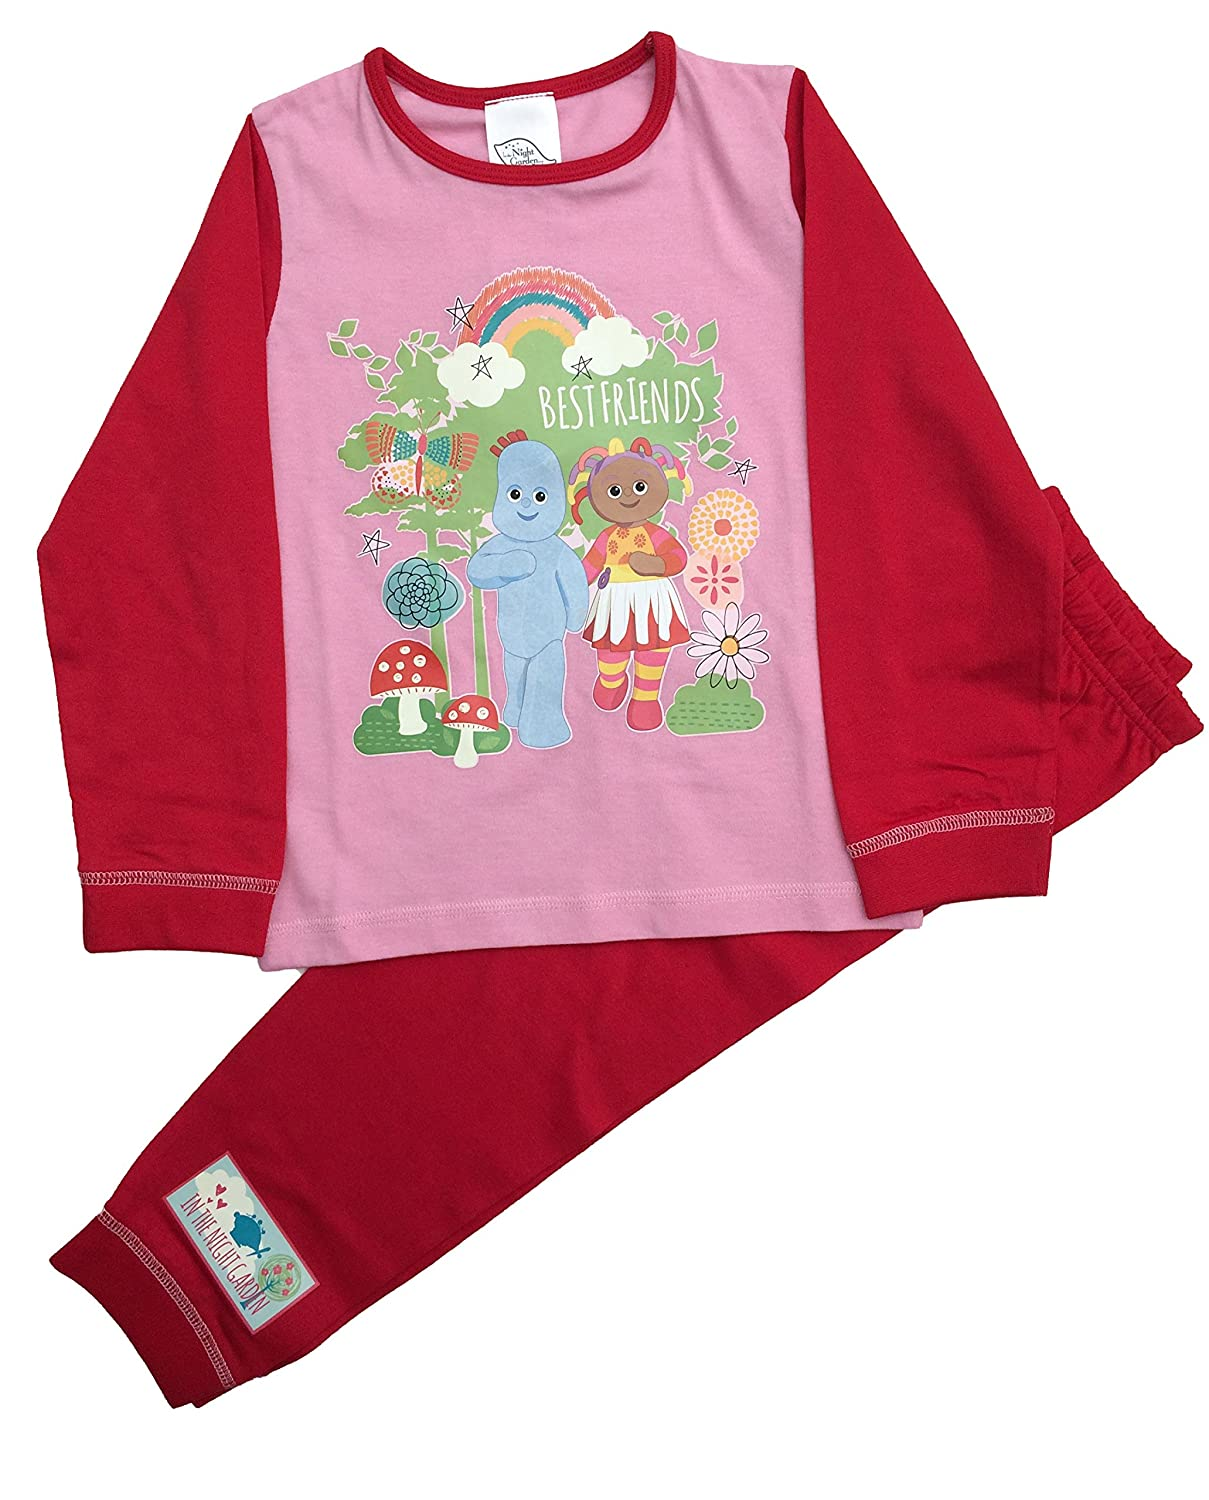 06685a2c3 In the Night Garden Girls Upsy Daisy Snuggle Fit Pyjamas Ages 12 ...